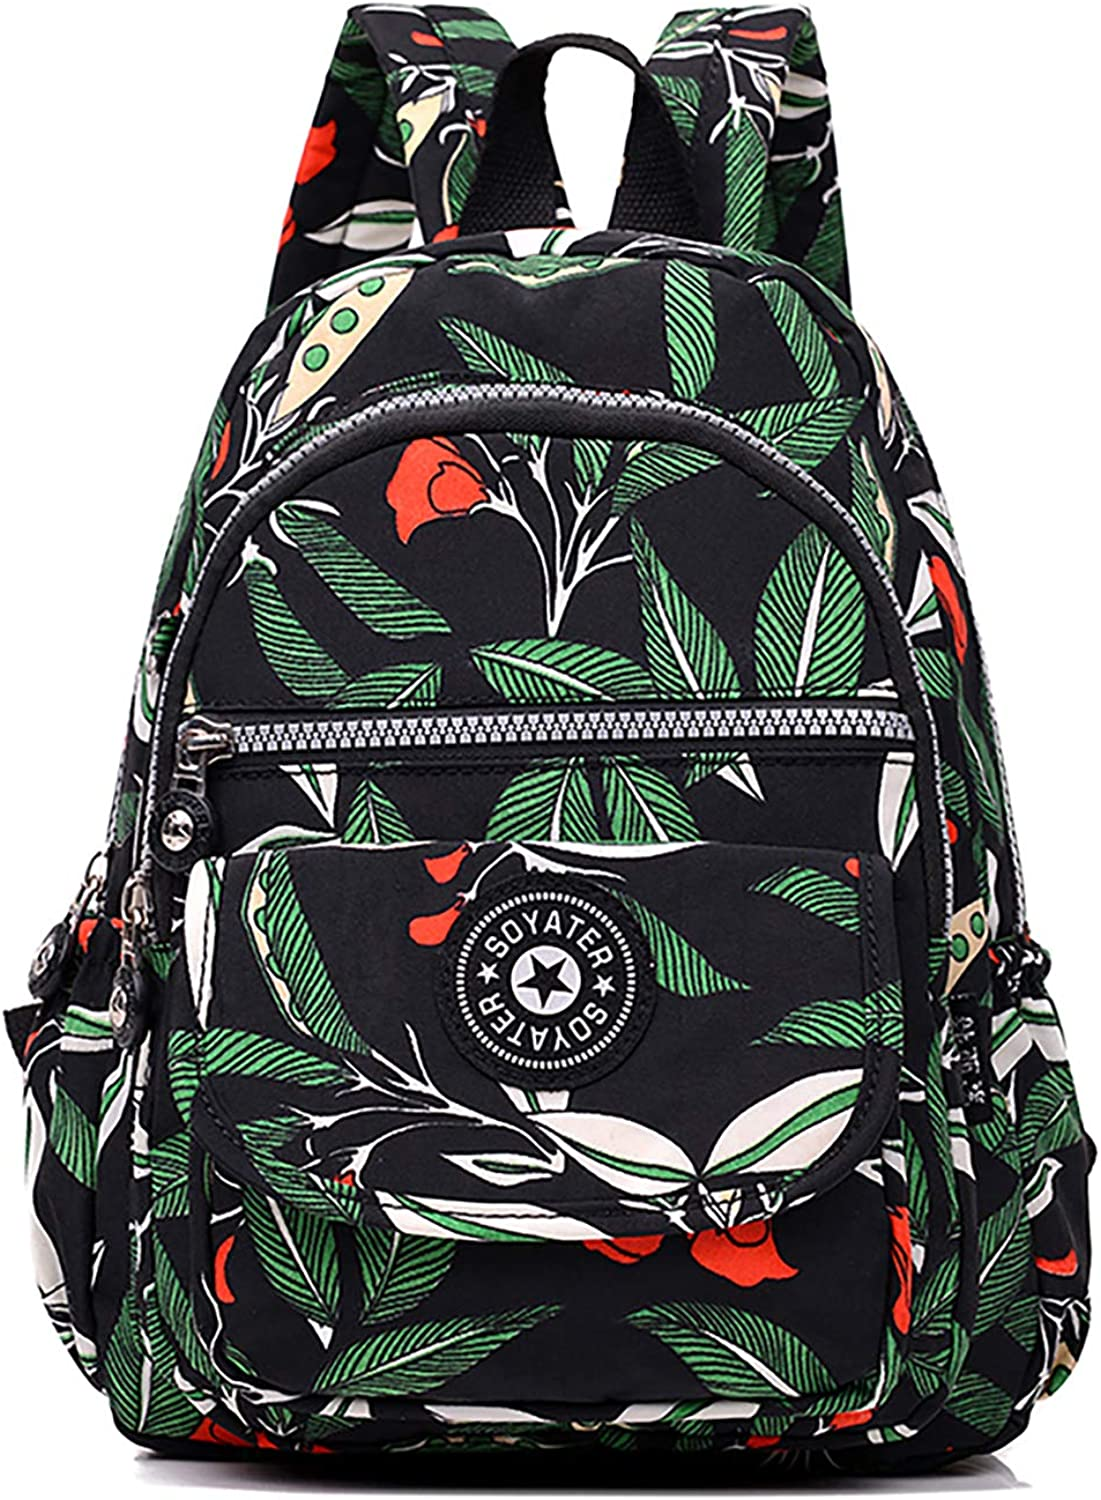 Casual Daypack with Colorful Pattern Water Resistant Stylish Lightweight College School Backpack for Women Men Teen